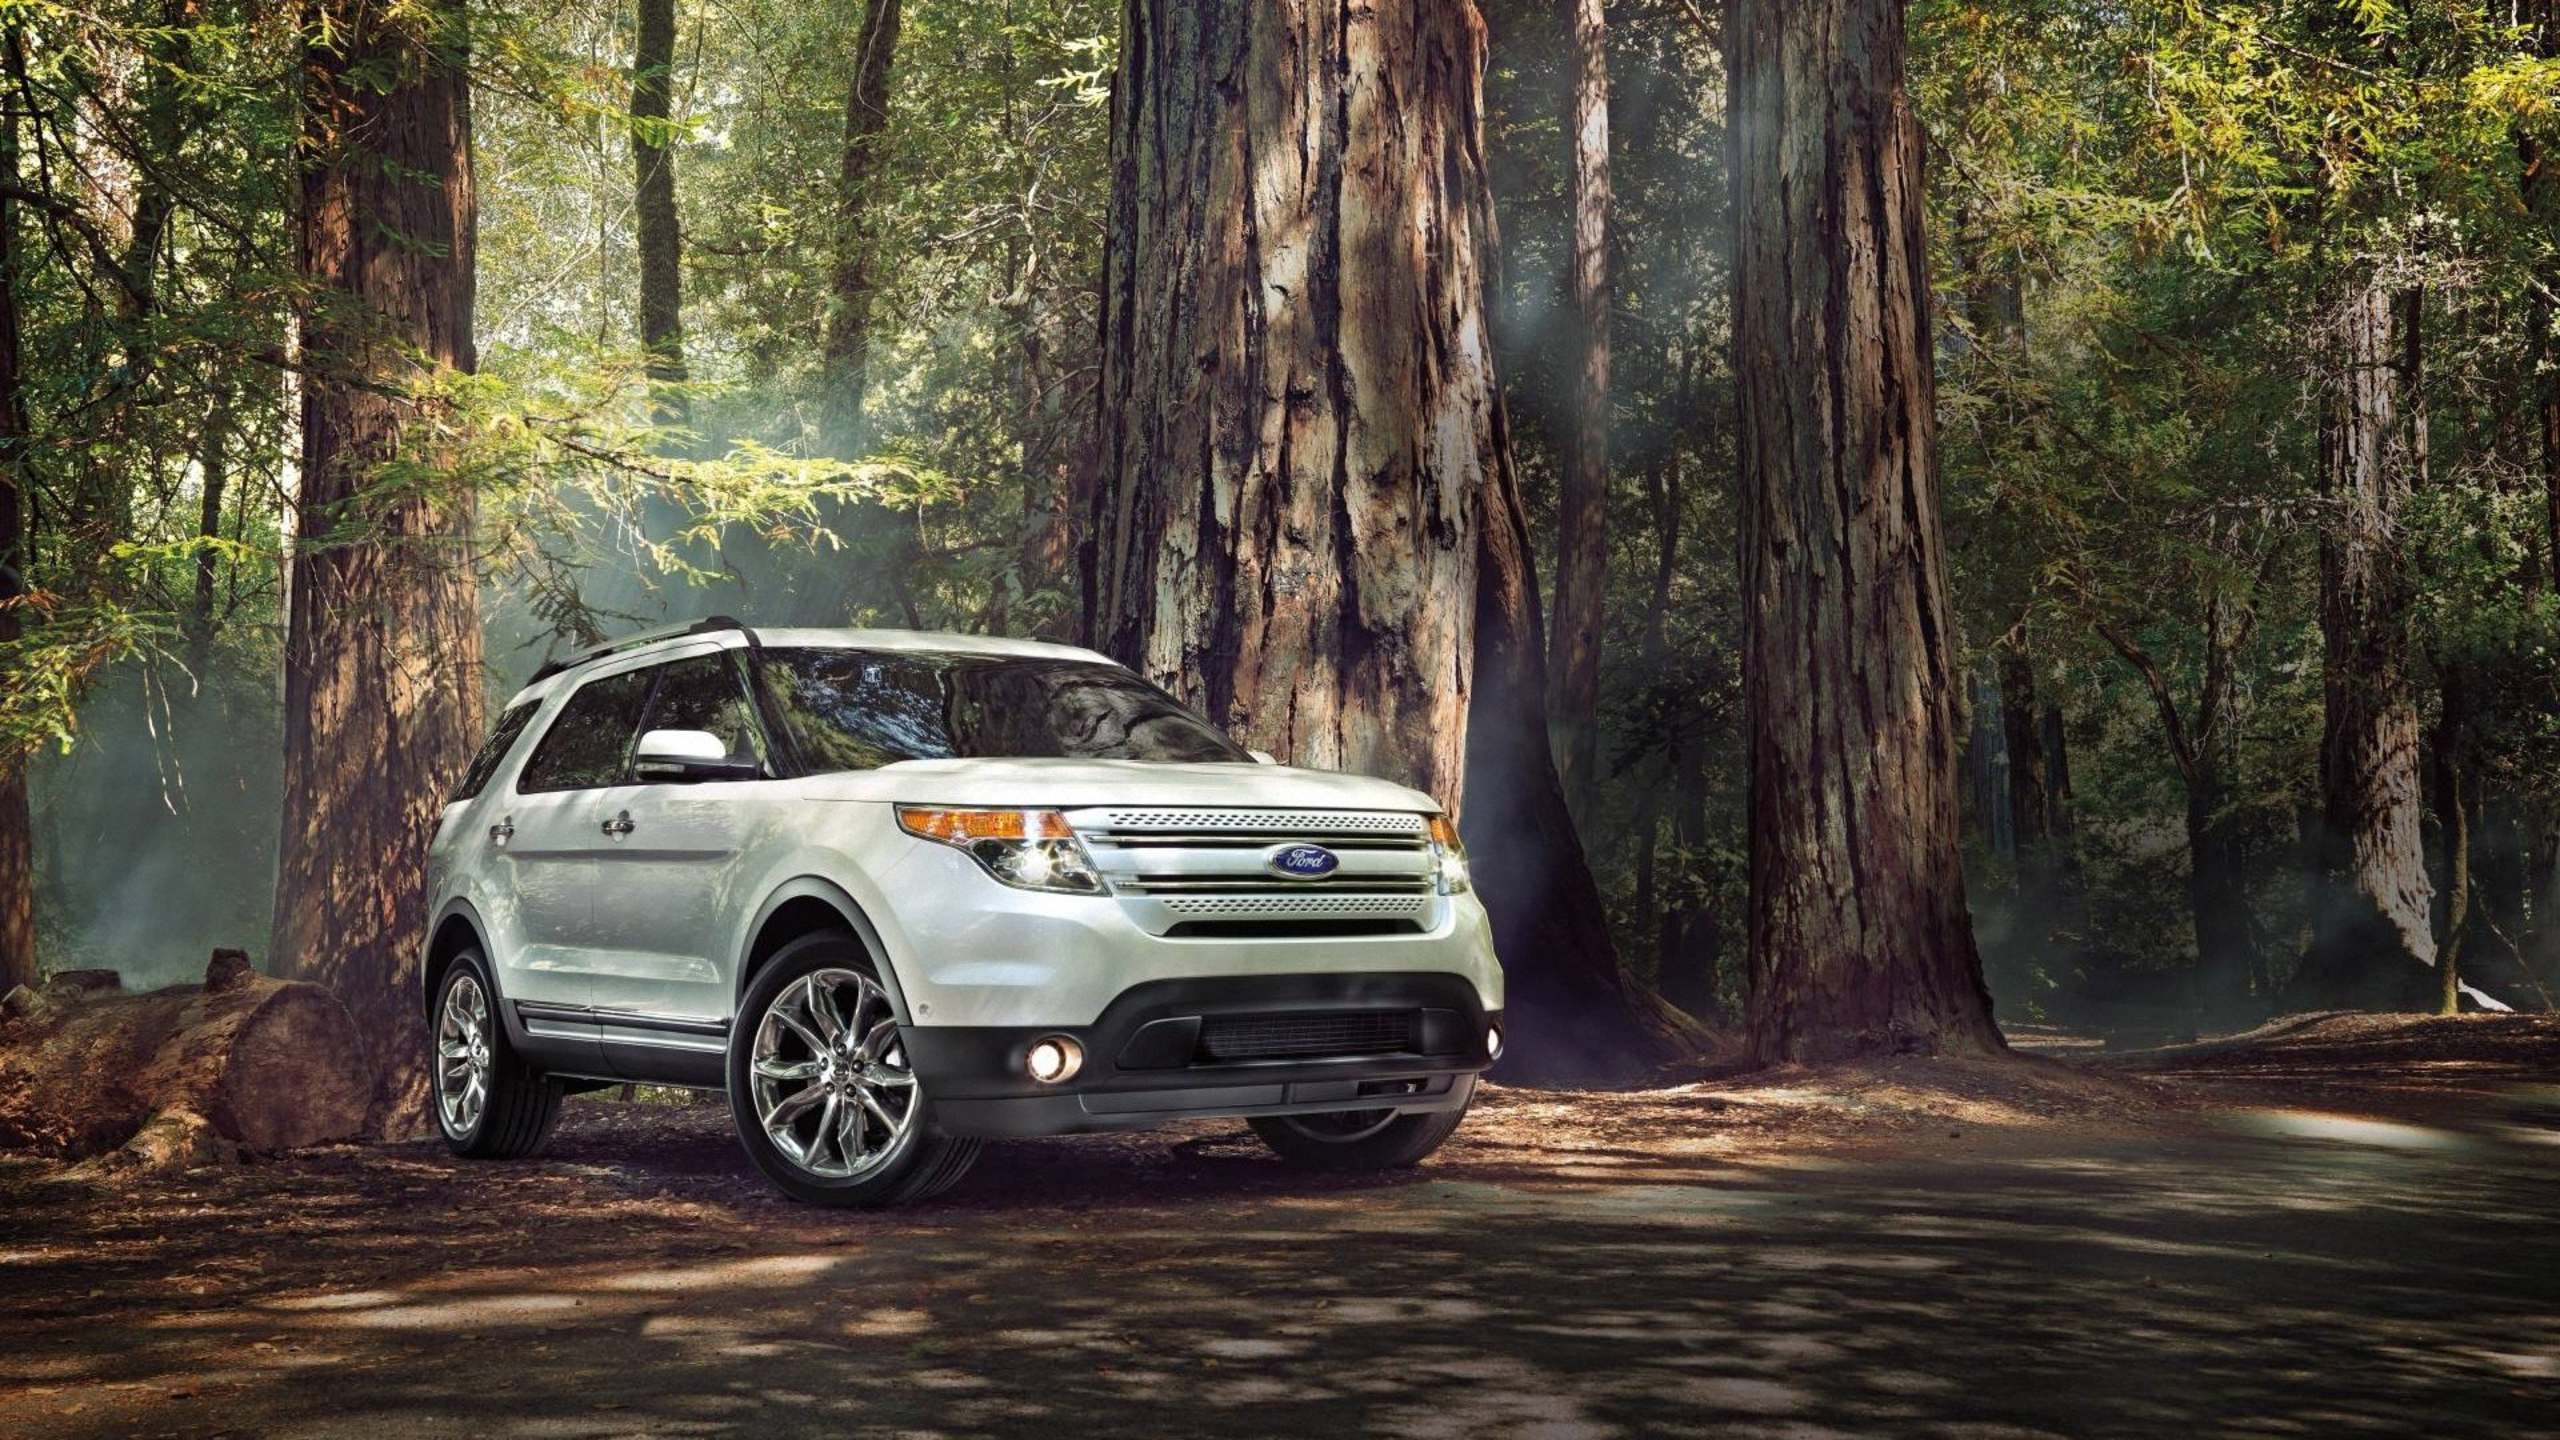 Safety Features Ford explorer, Car ford, 2014 ford explorer